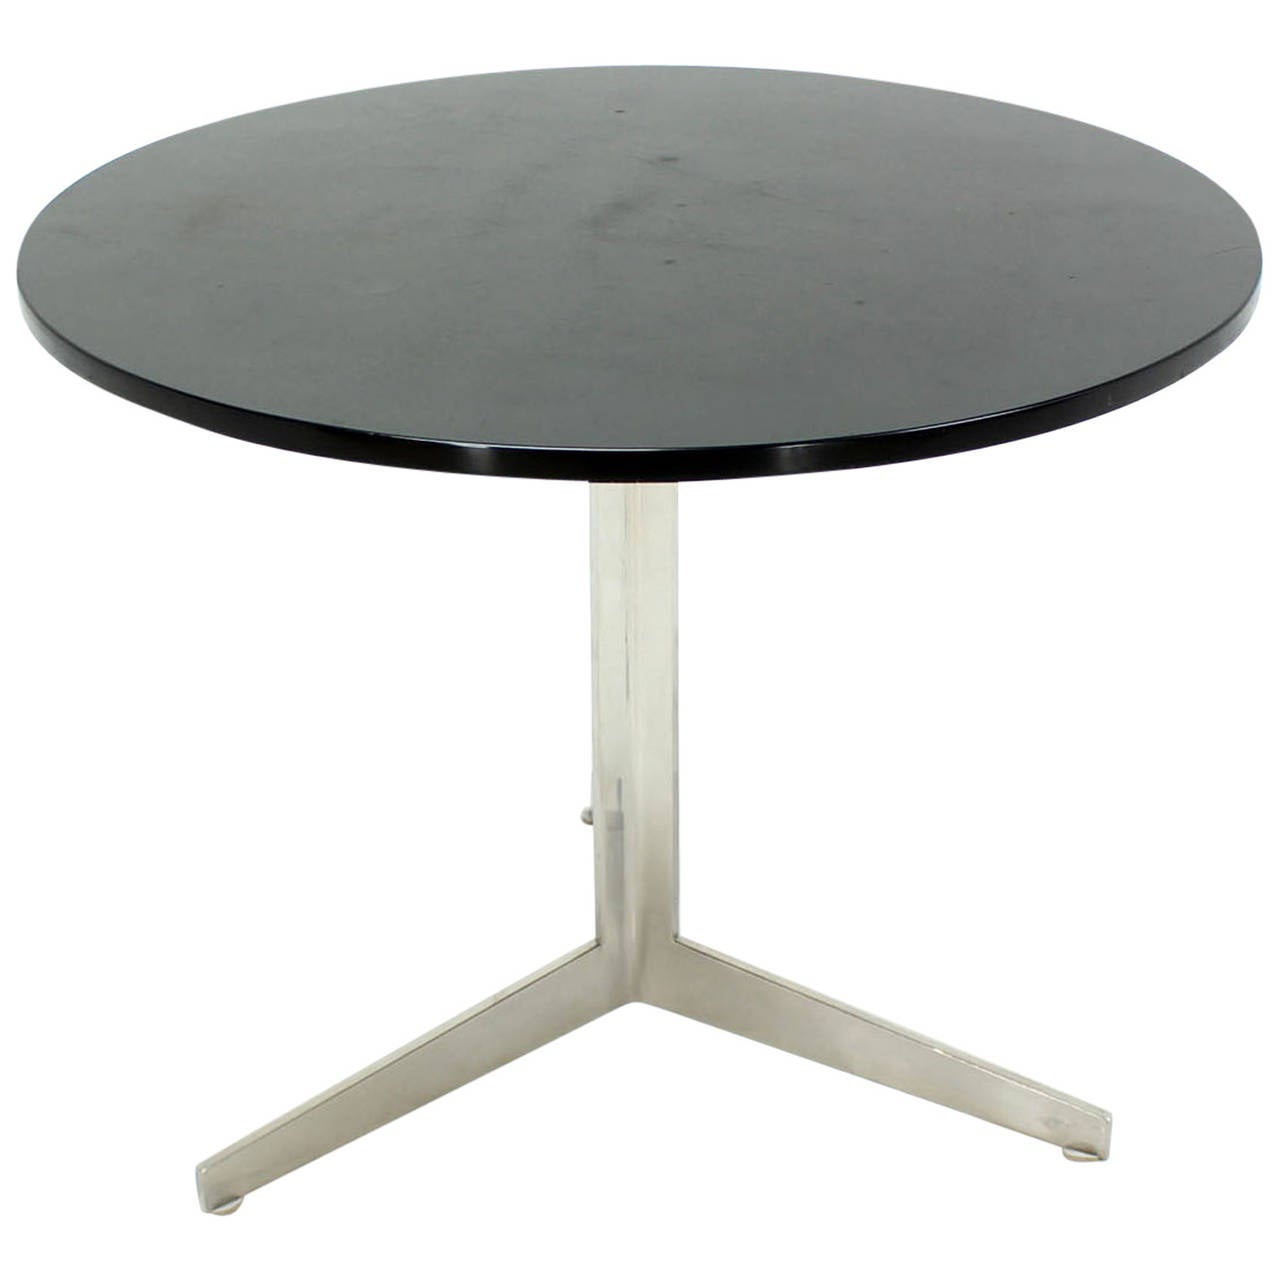 Stainless steel base marble top round side table at 1stdibs for Side table base